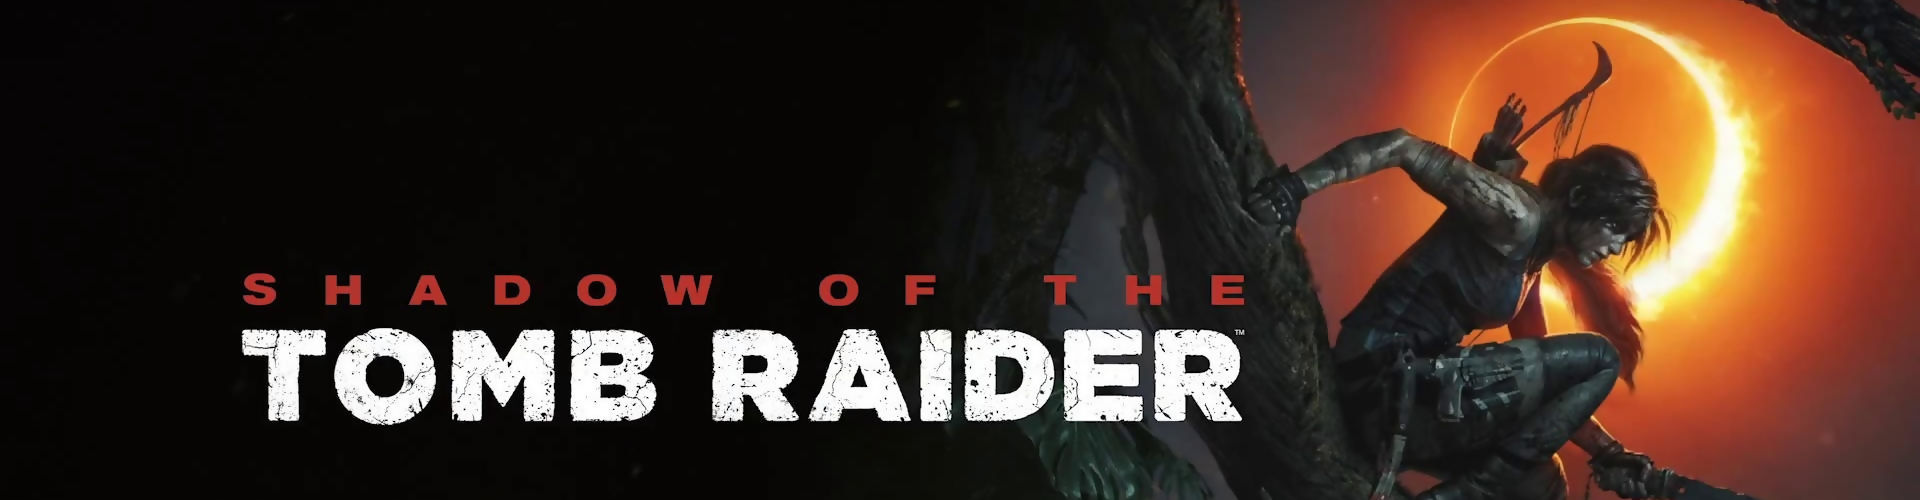 Check out all the European scores of Shadow of the Tomb Raider